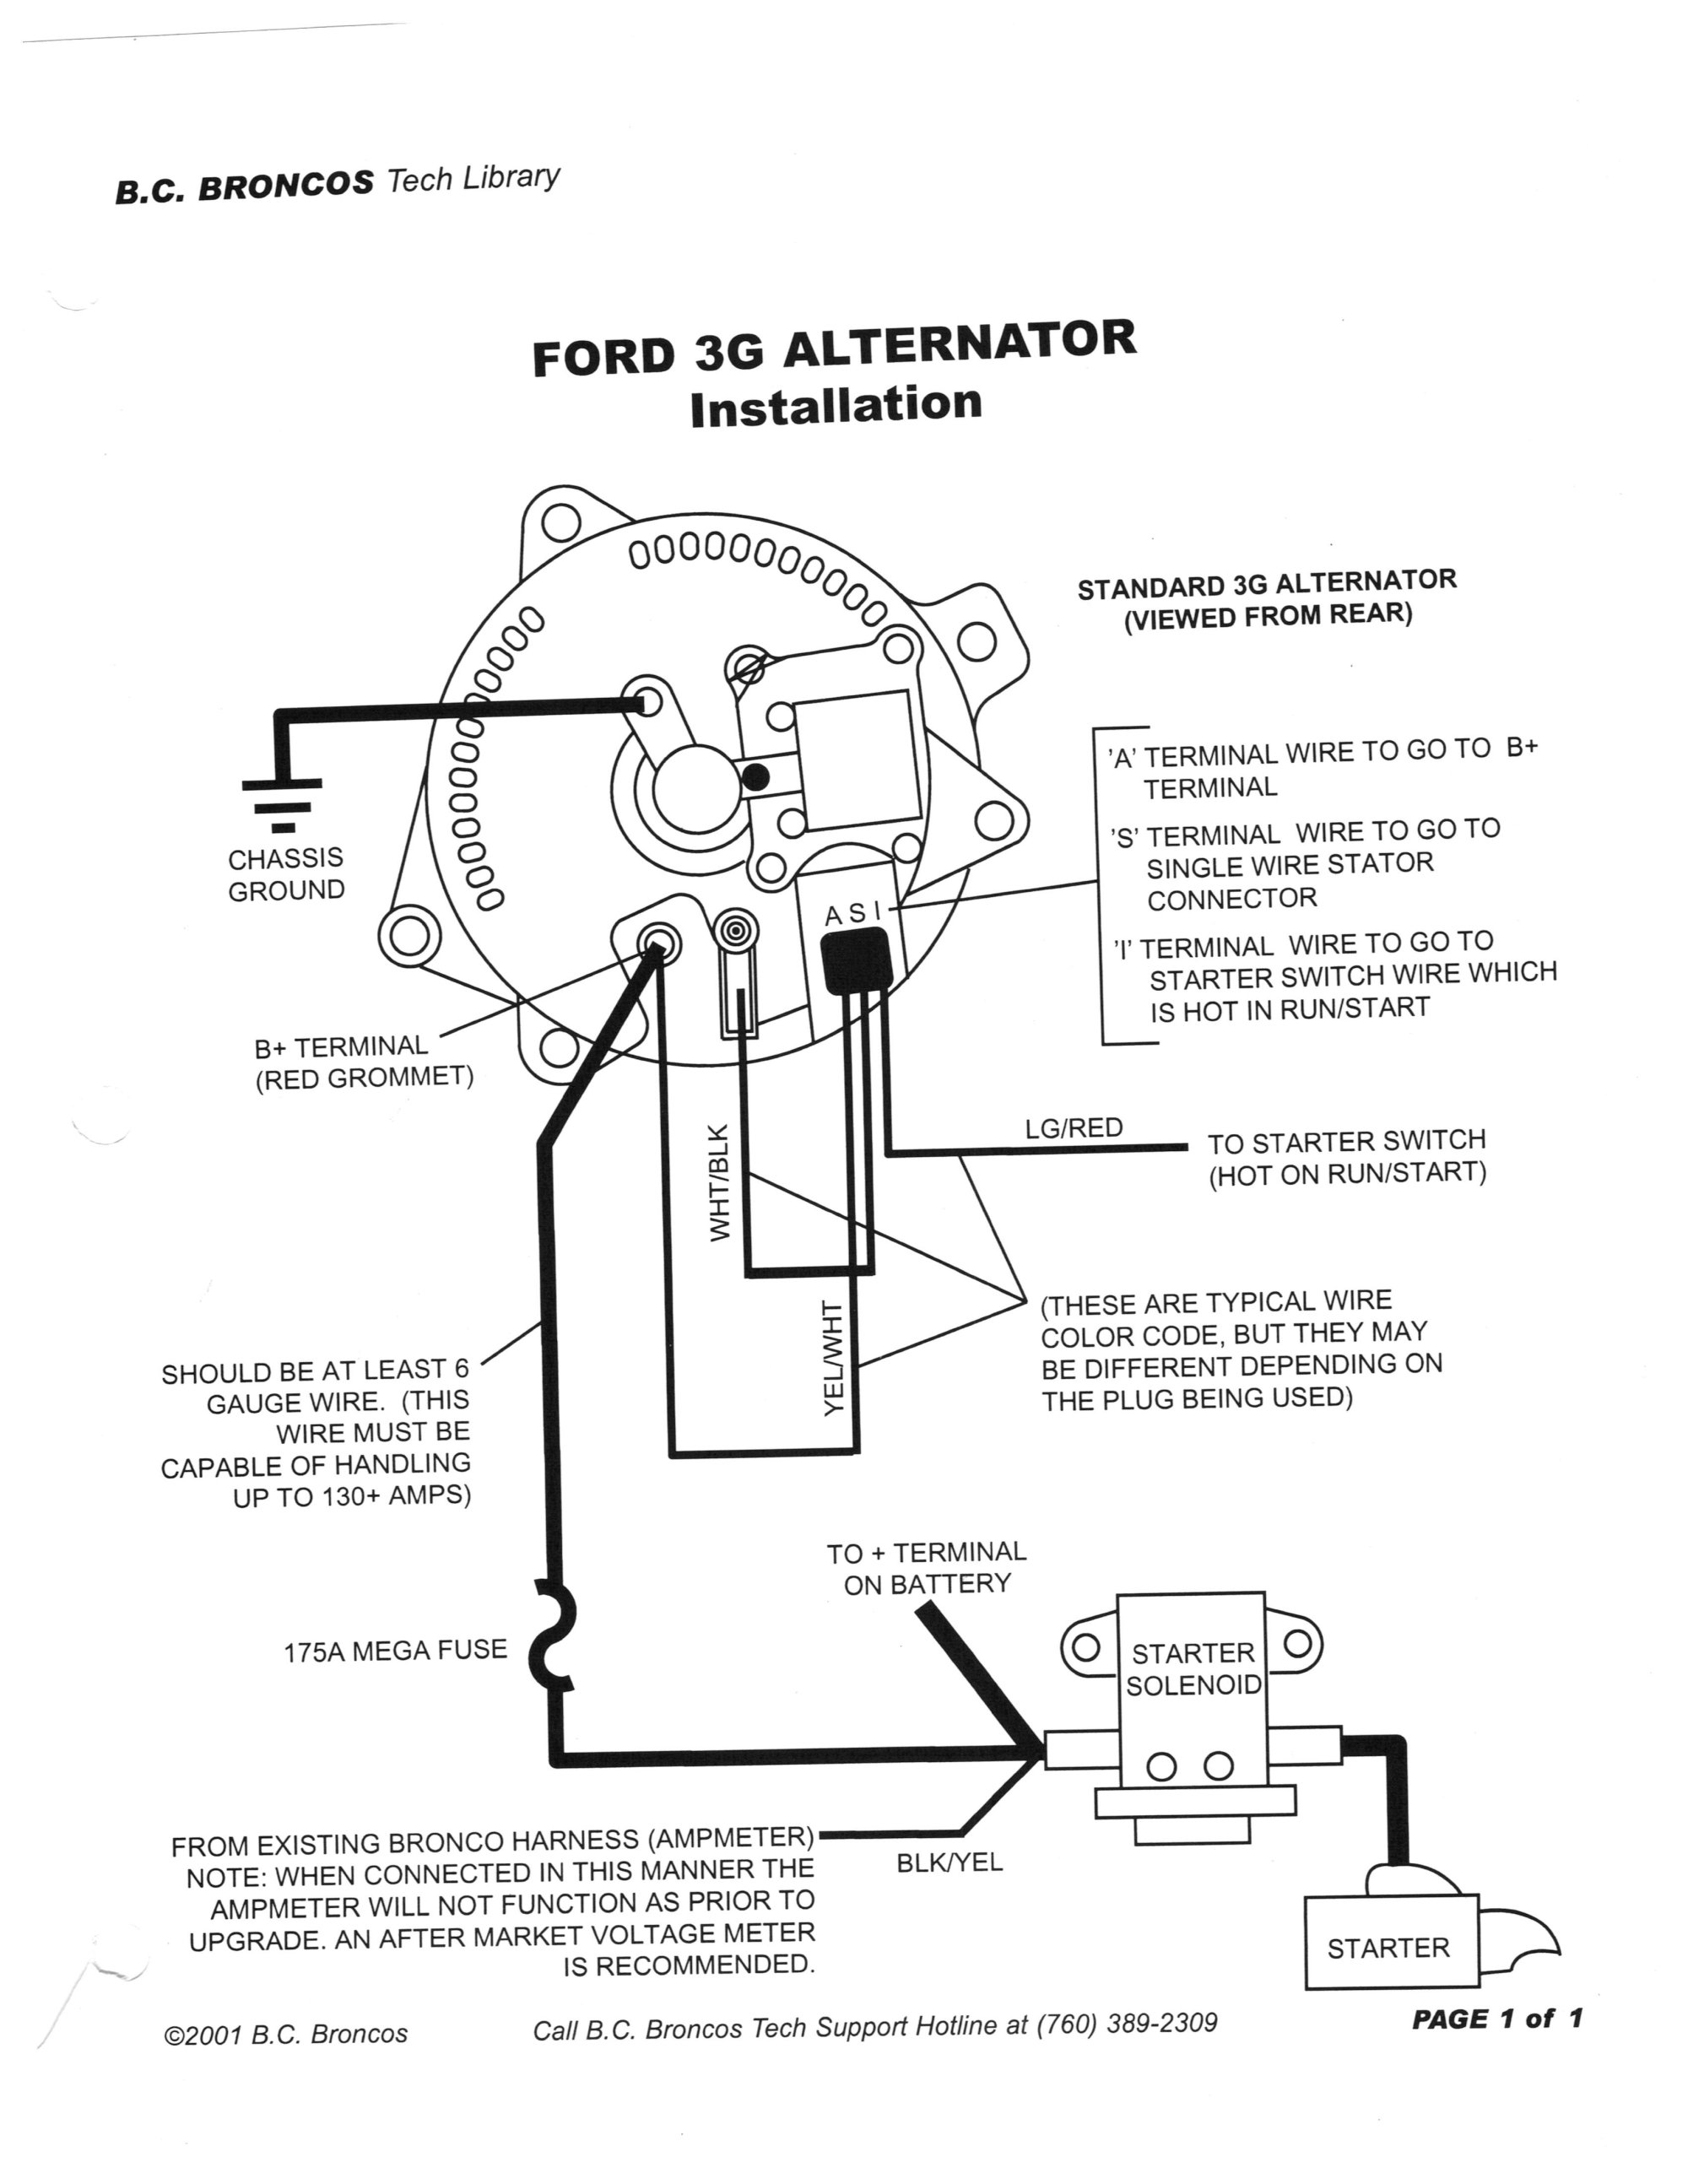 hight resolution of 1971 ford alternator wiring search wiring diagram 1971 ford alternator wiring diagram